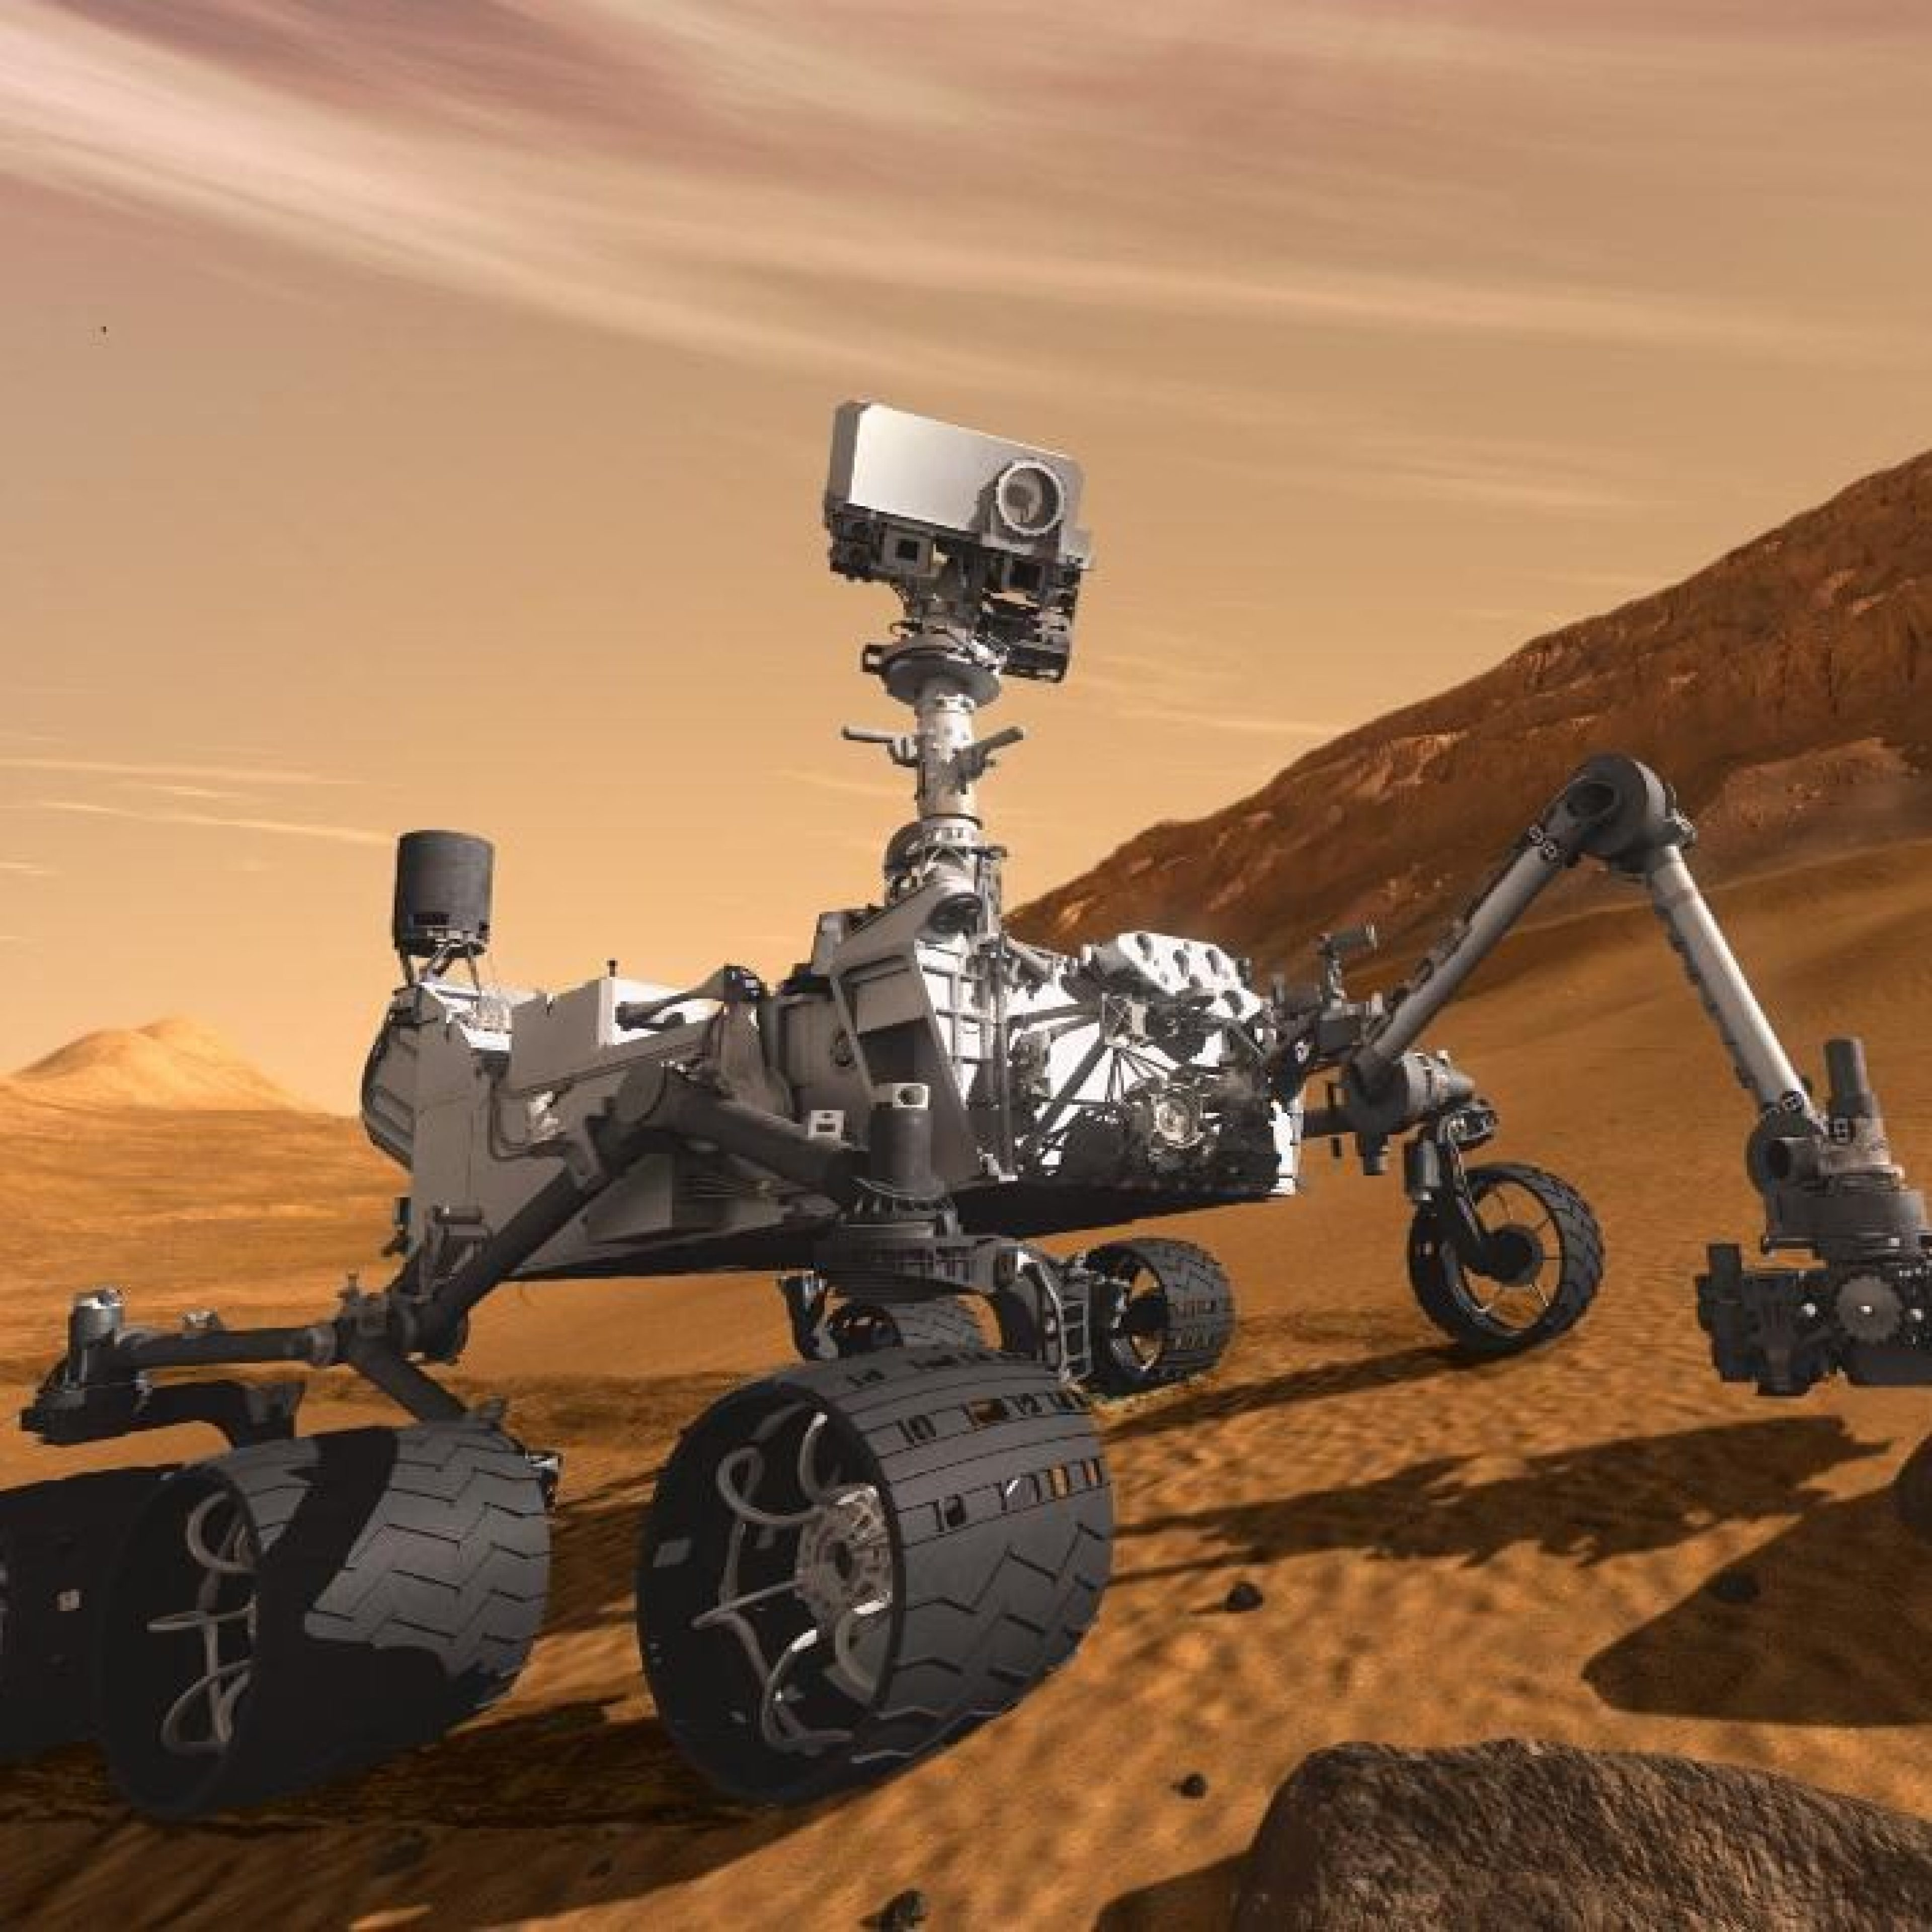 Castrol lubricants for Nasa's Mars programme